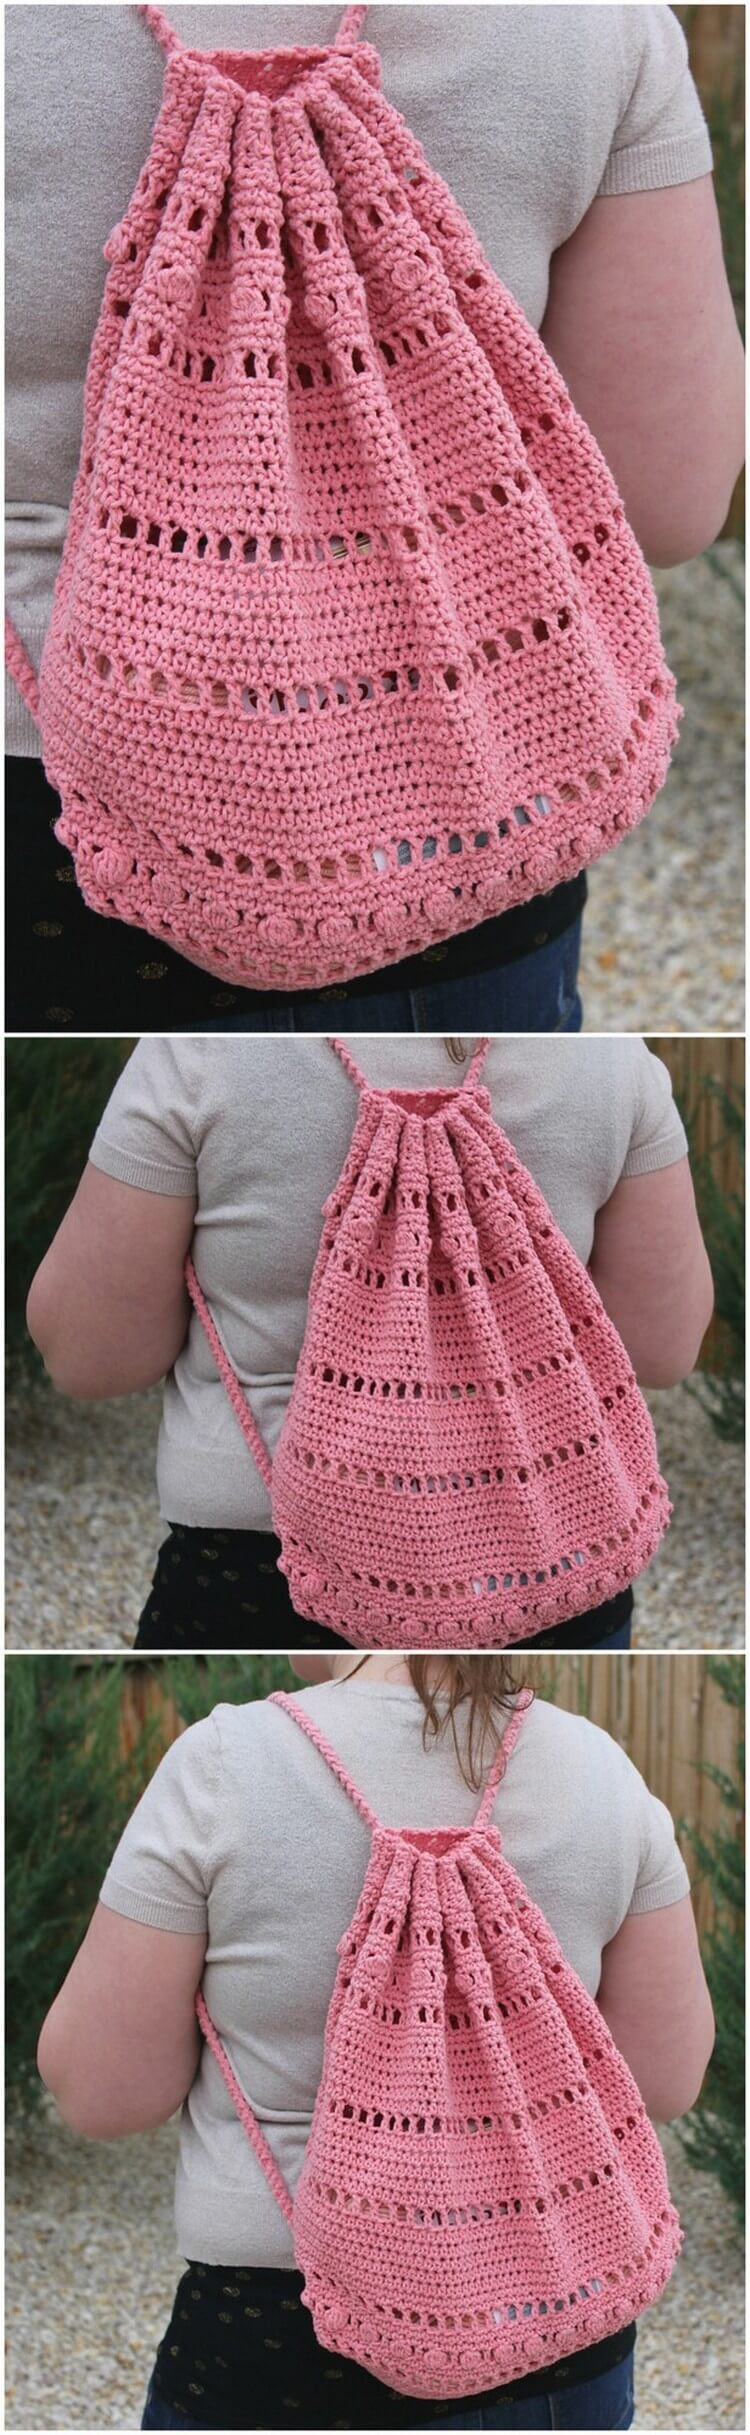 Crochet Backpack Pattern (26)